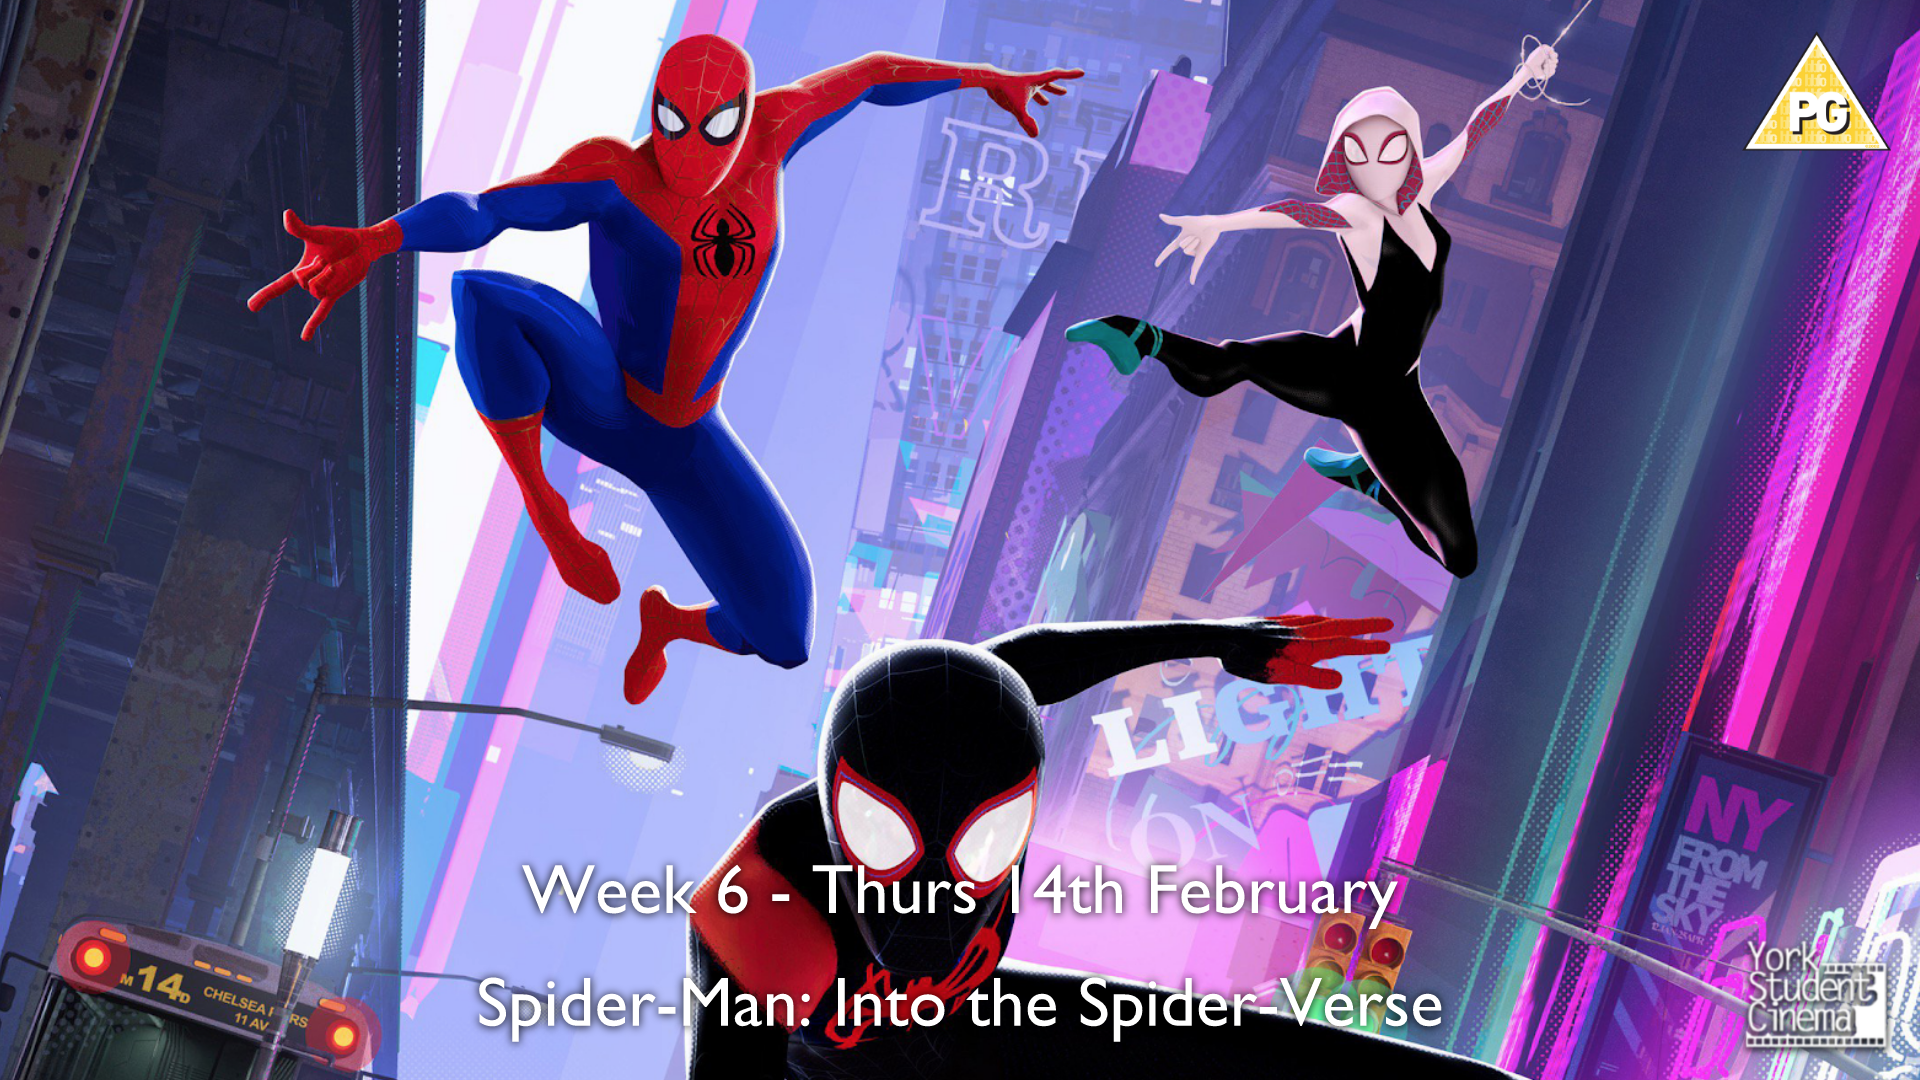 YSC Screening of Spider-Man: Into The Spider-Verse